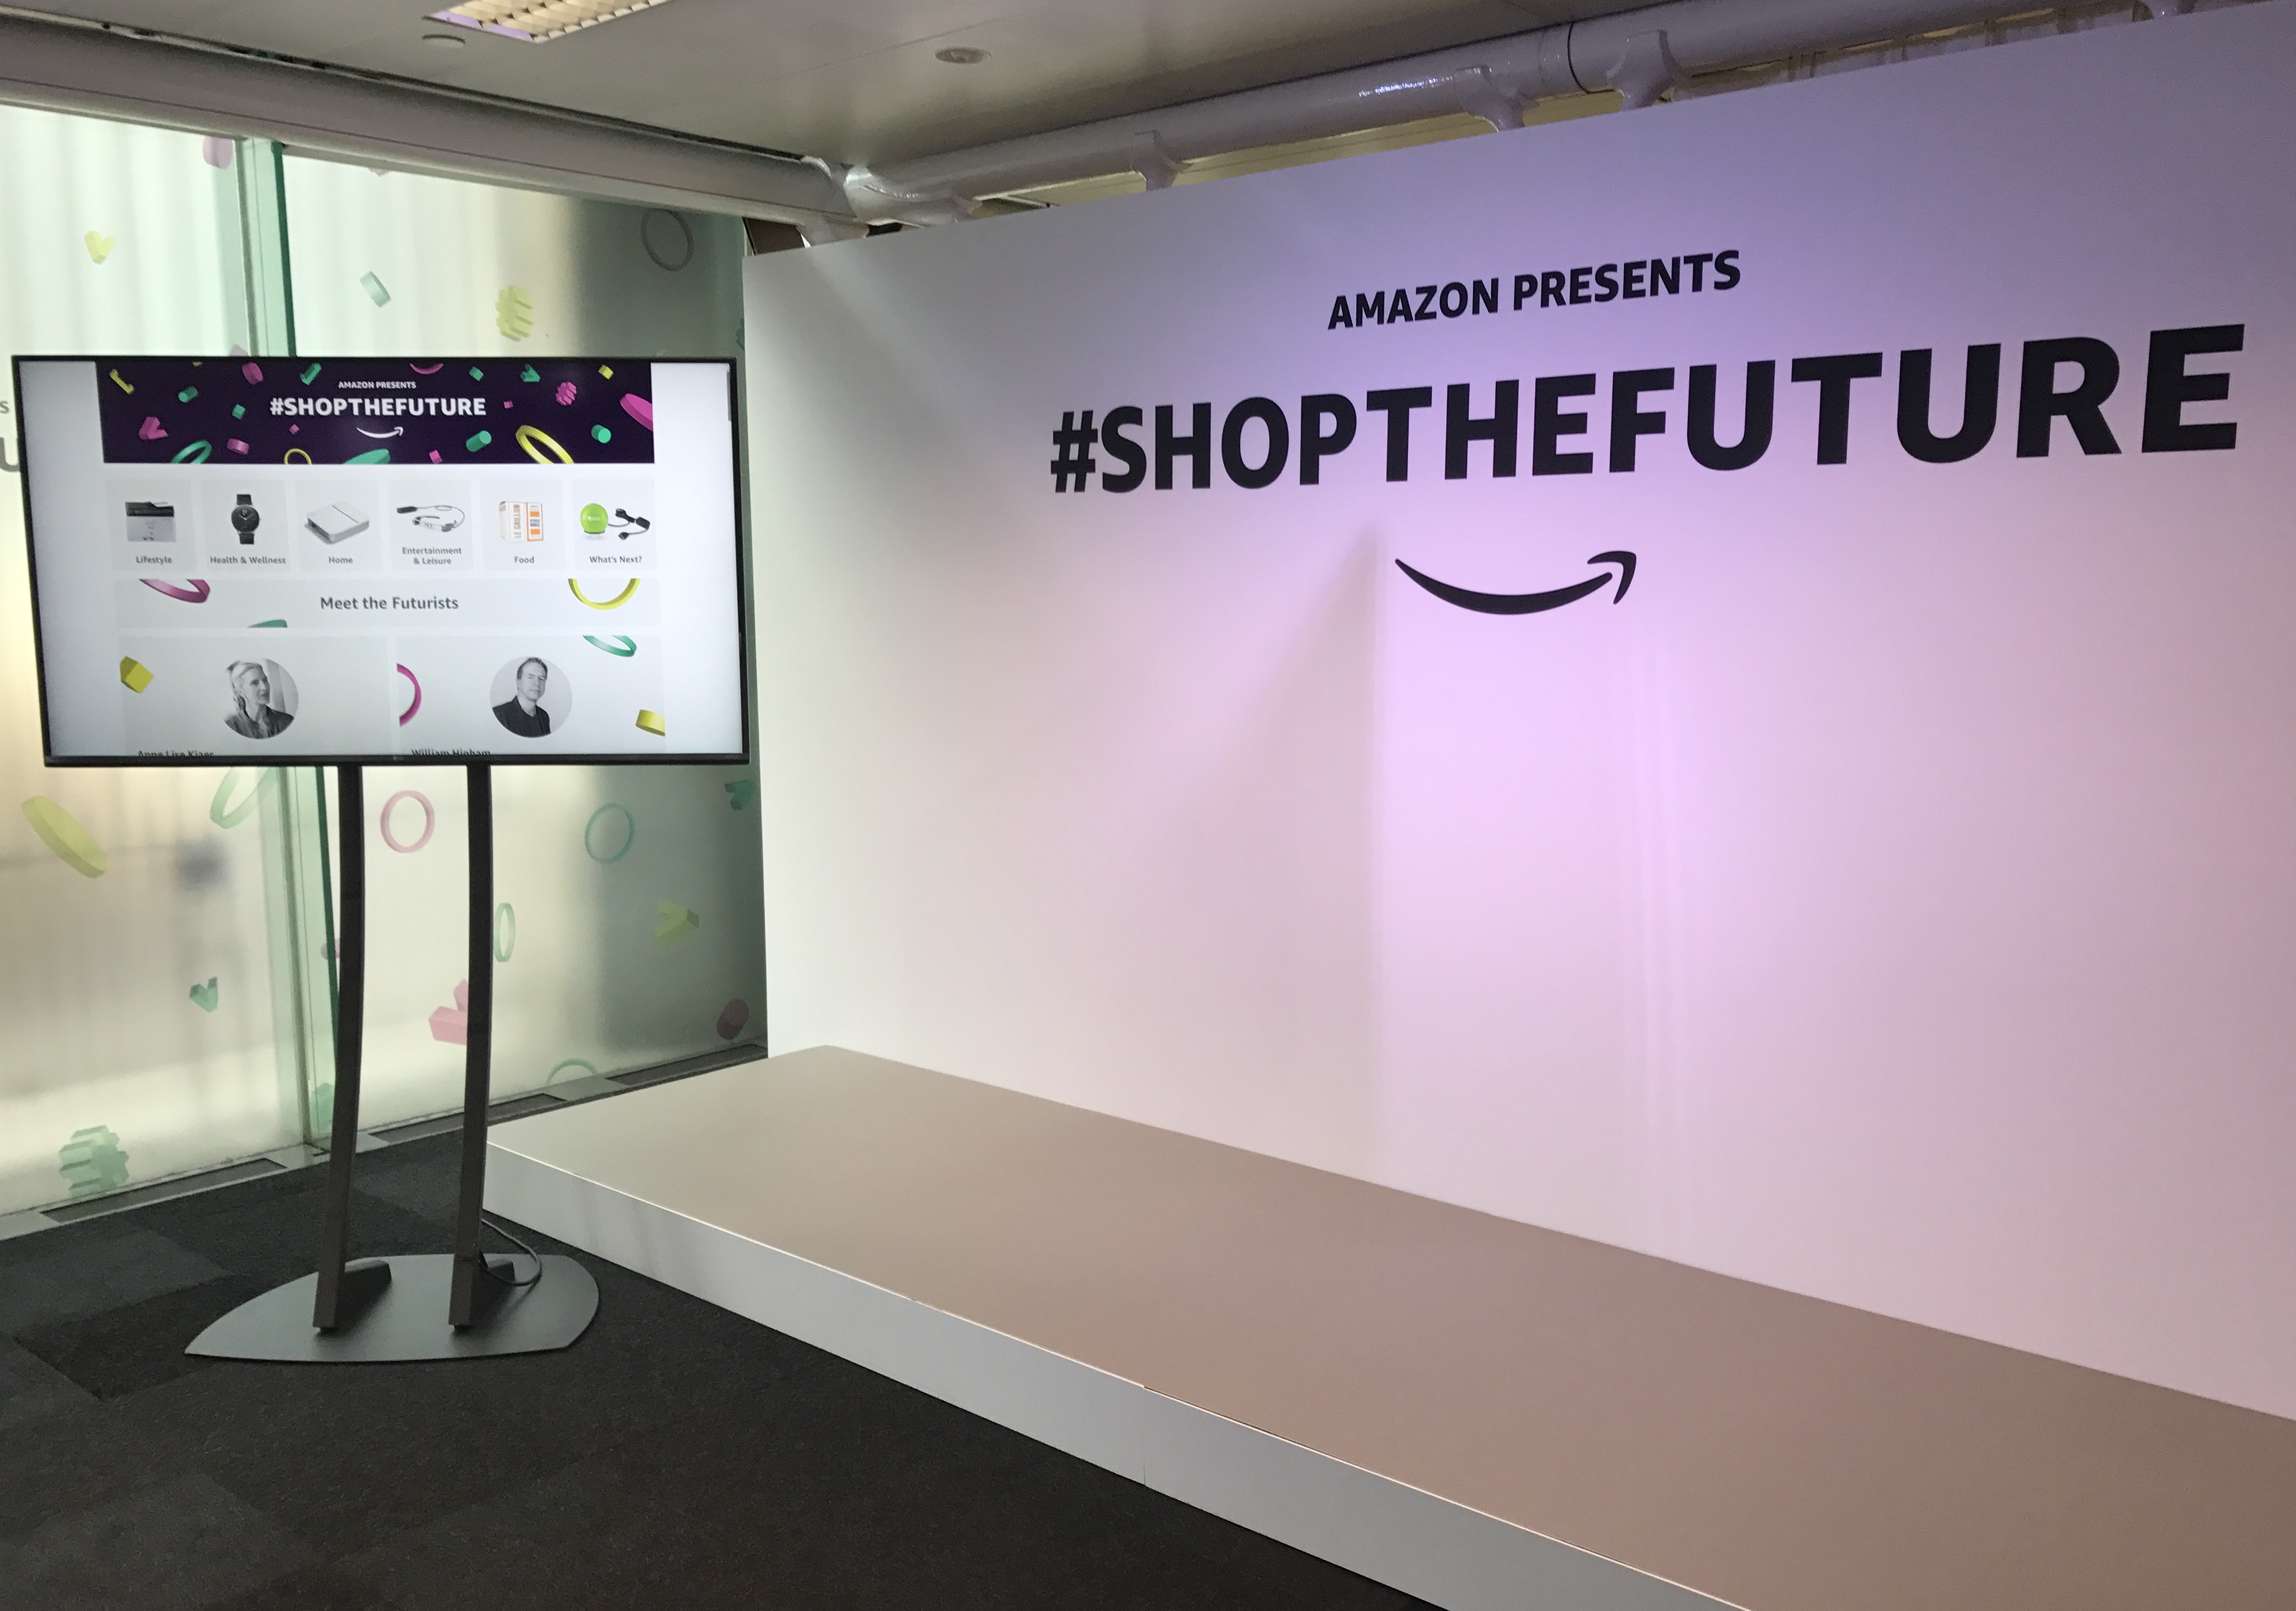 Amazon Christmas in July event - showcasing #shopthefuture ...